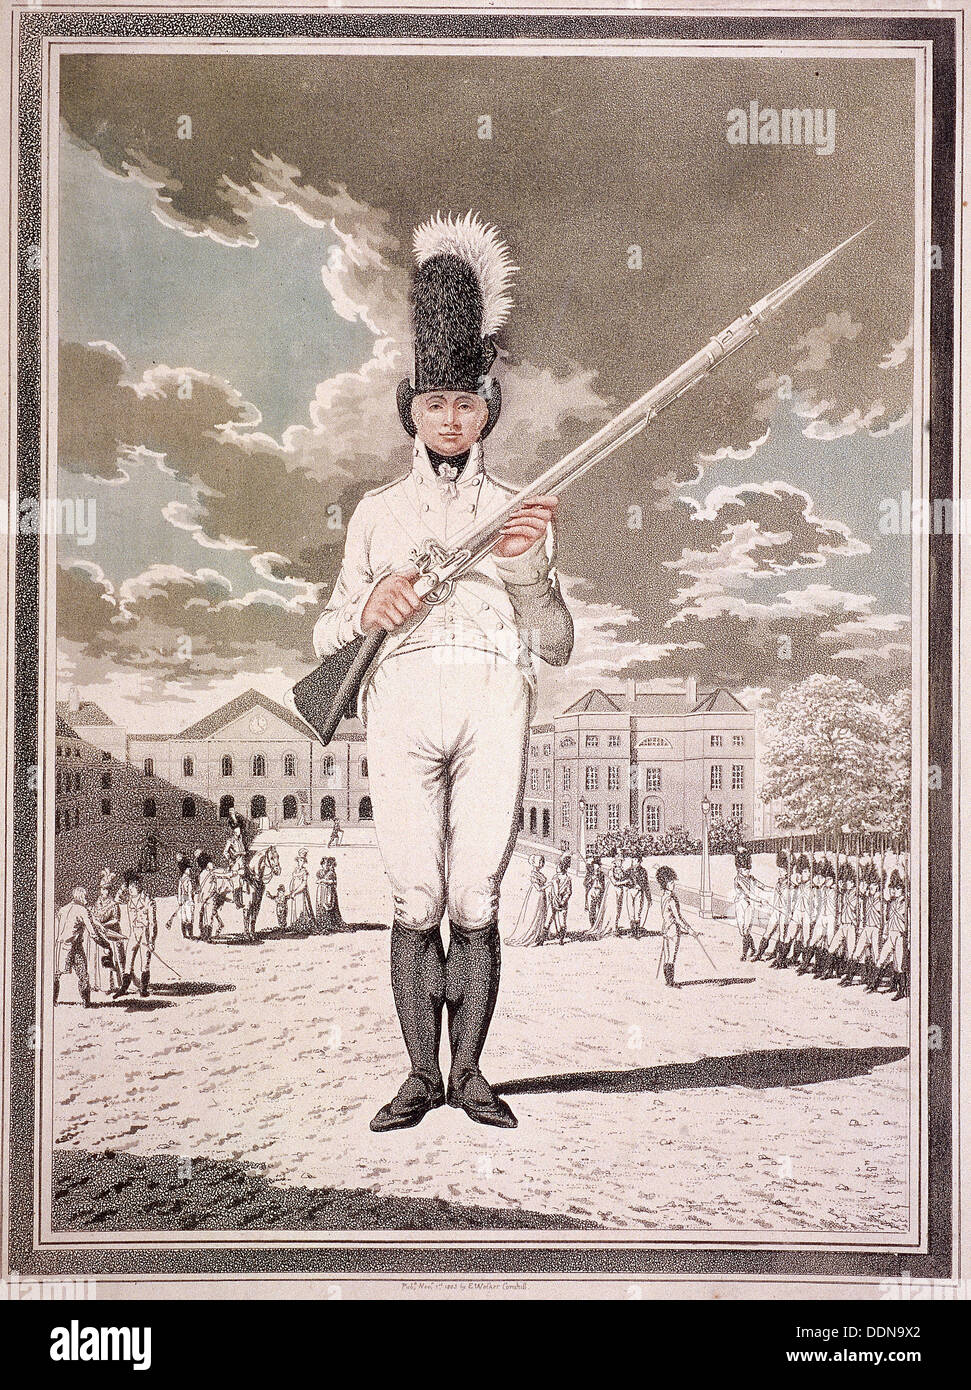 Military figure in the uniform of the Bloomsbury and Inns of Court Association, 1803. Artist: Anon - Stock Image